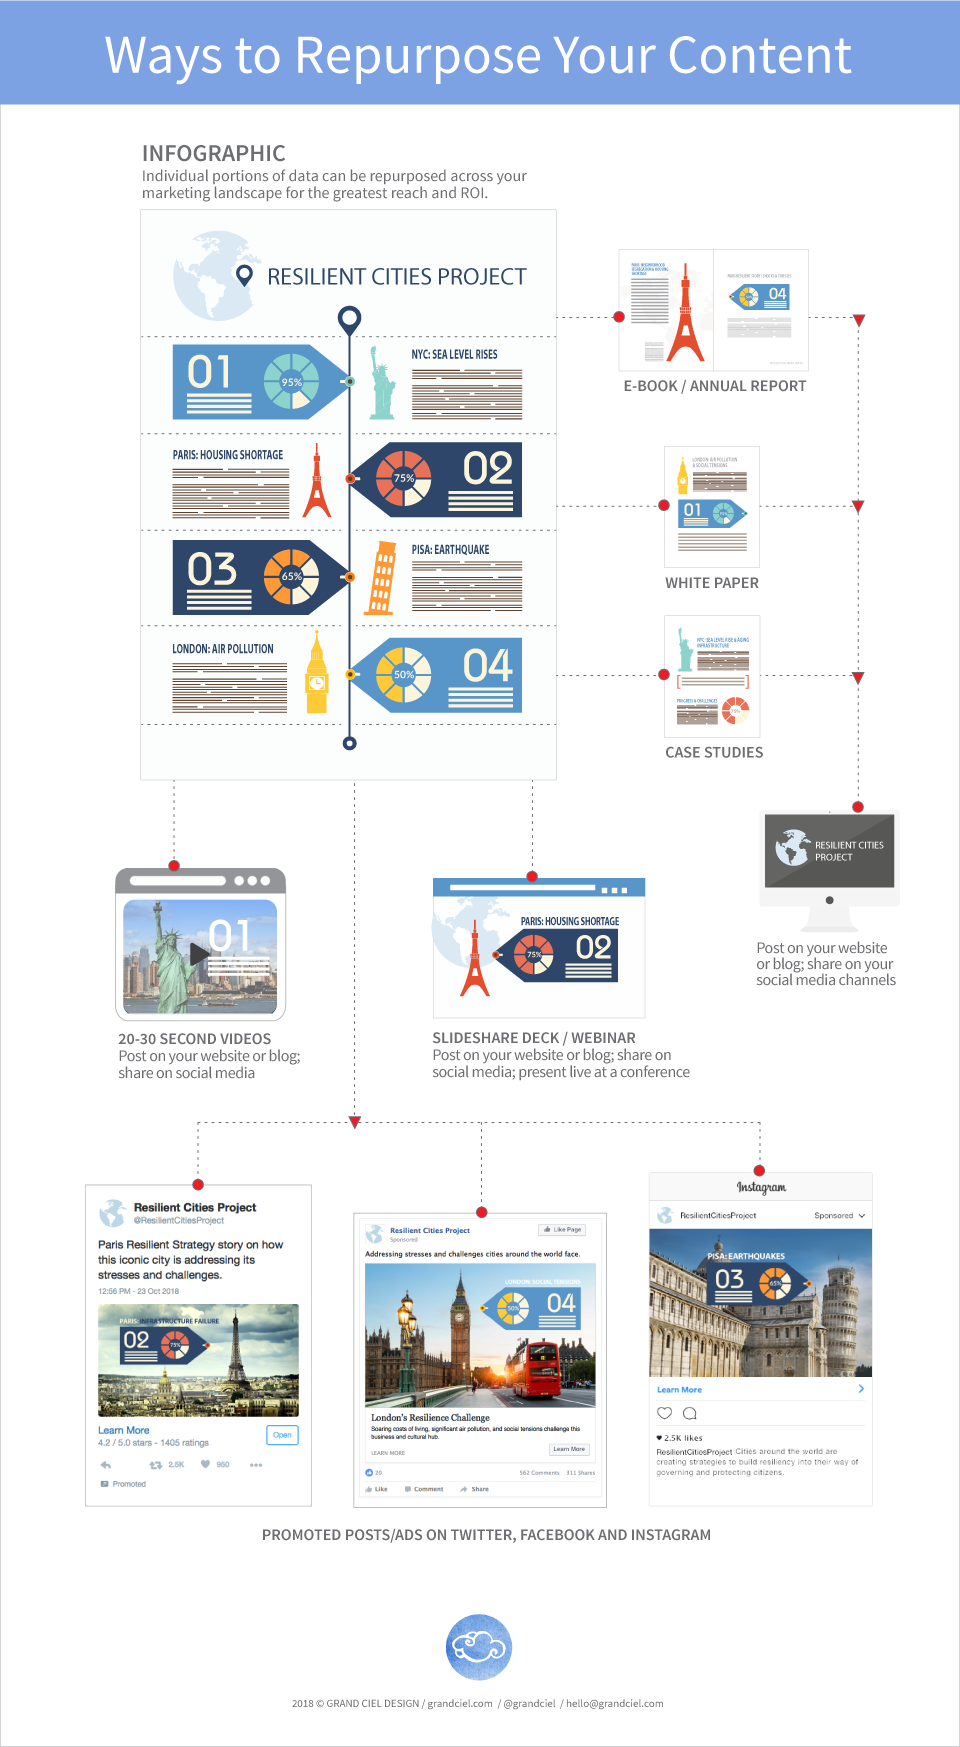 Illustrated Ways to Repurpose Your Content Infographic